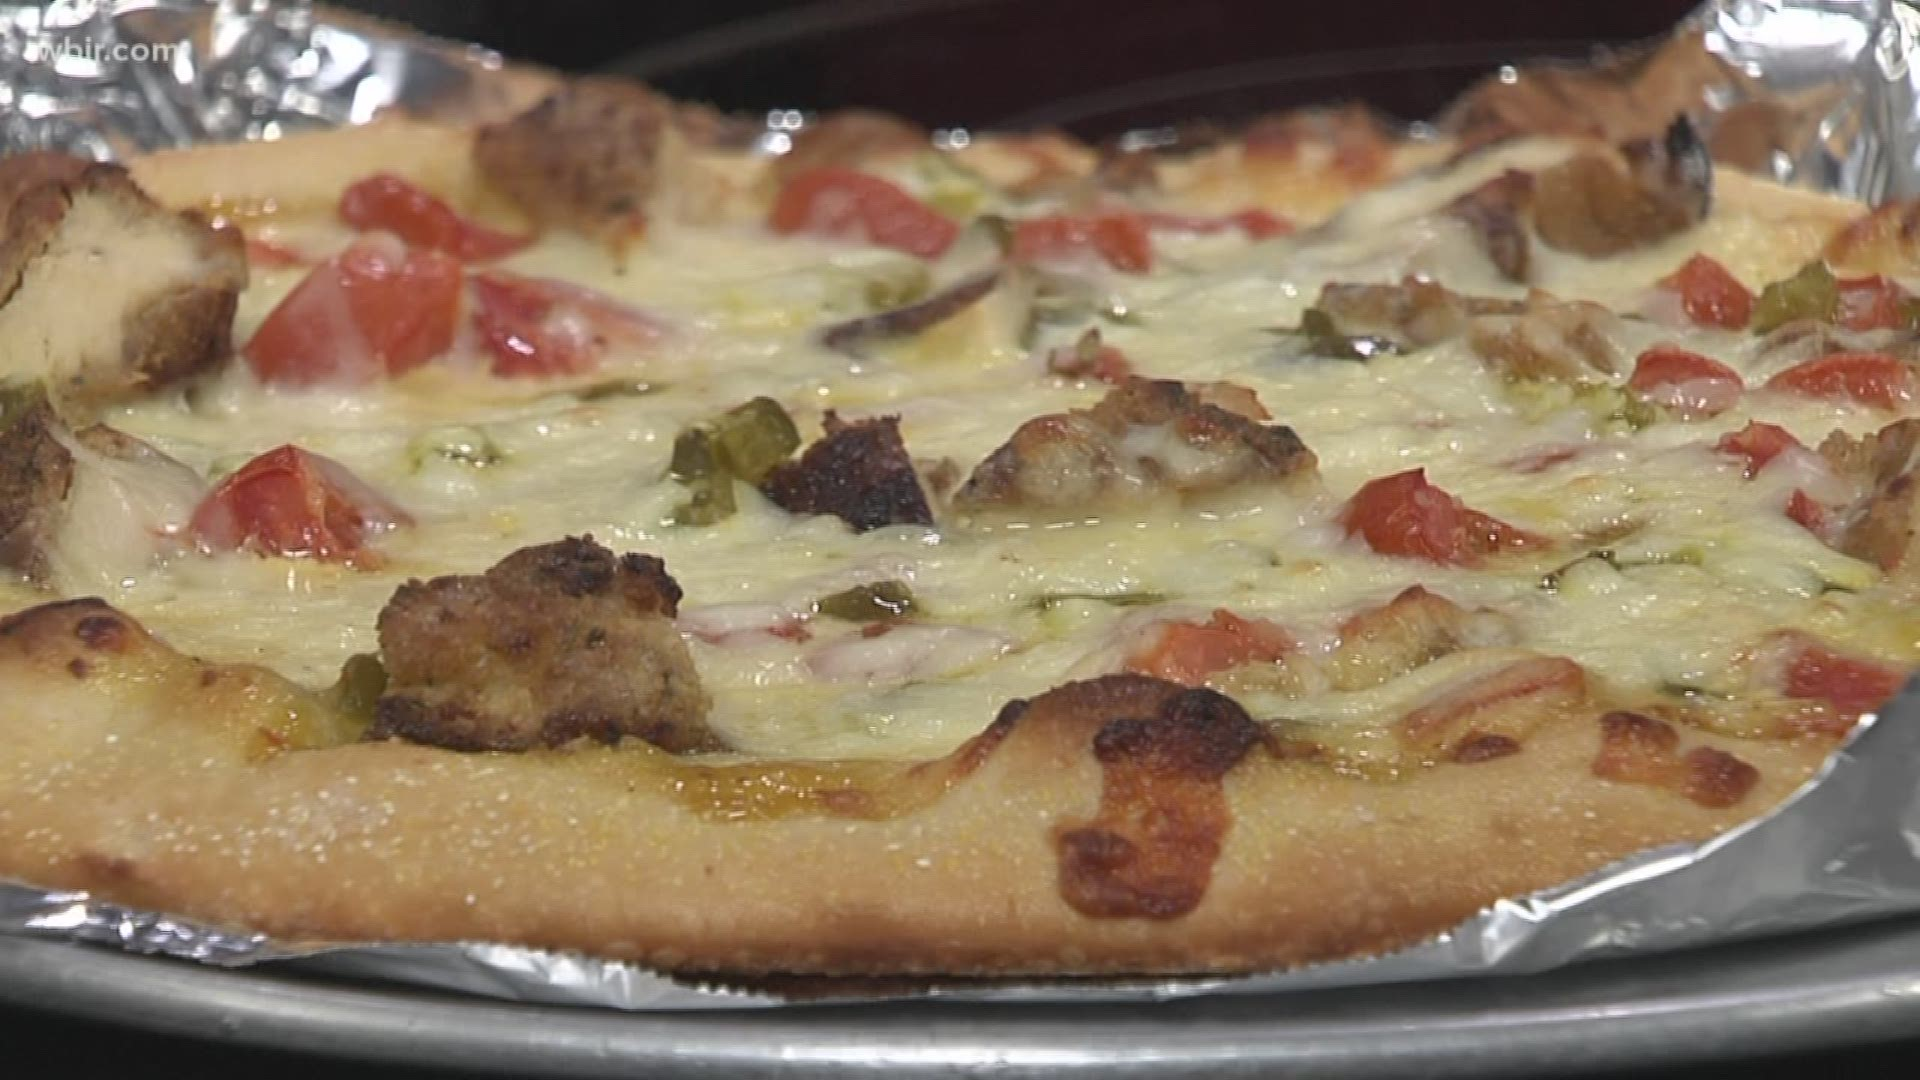 Metro Pizza Makes A Honey Mustard And Chicken Pizza Wbir Com